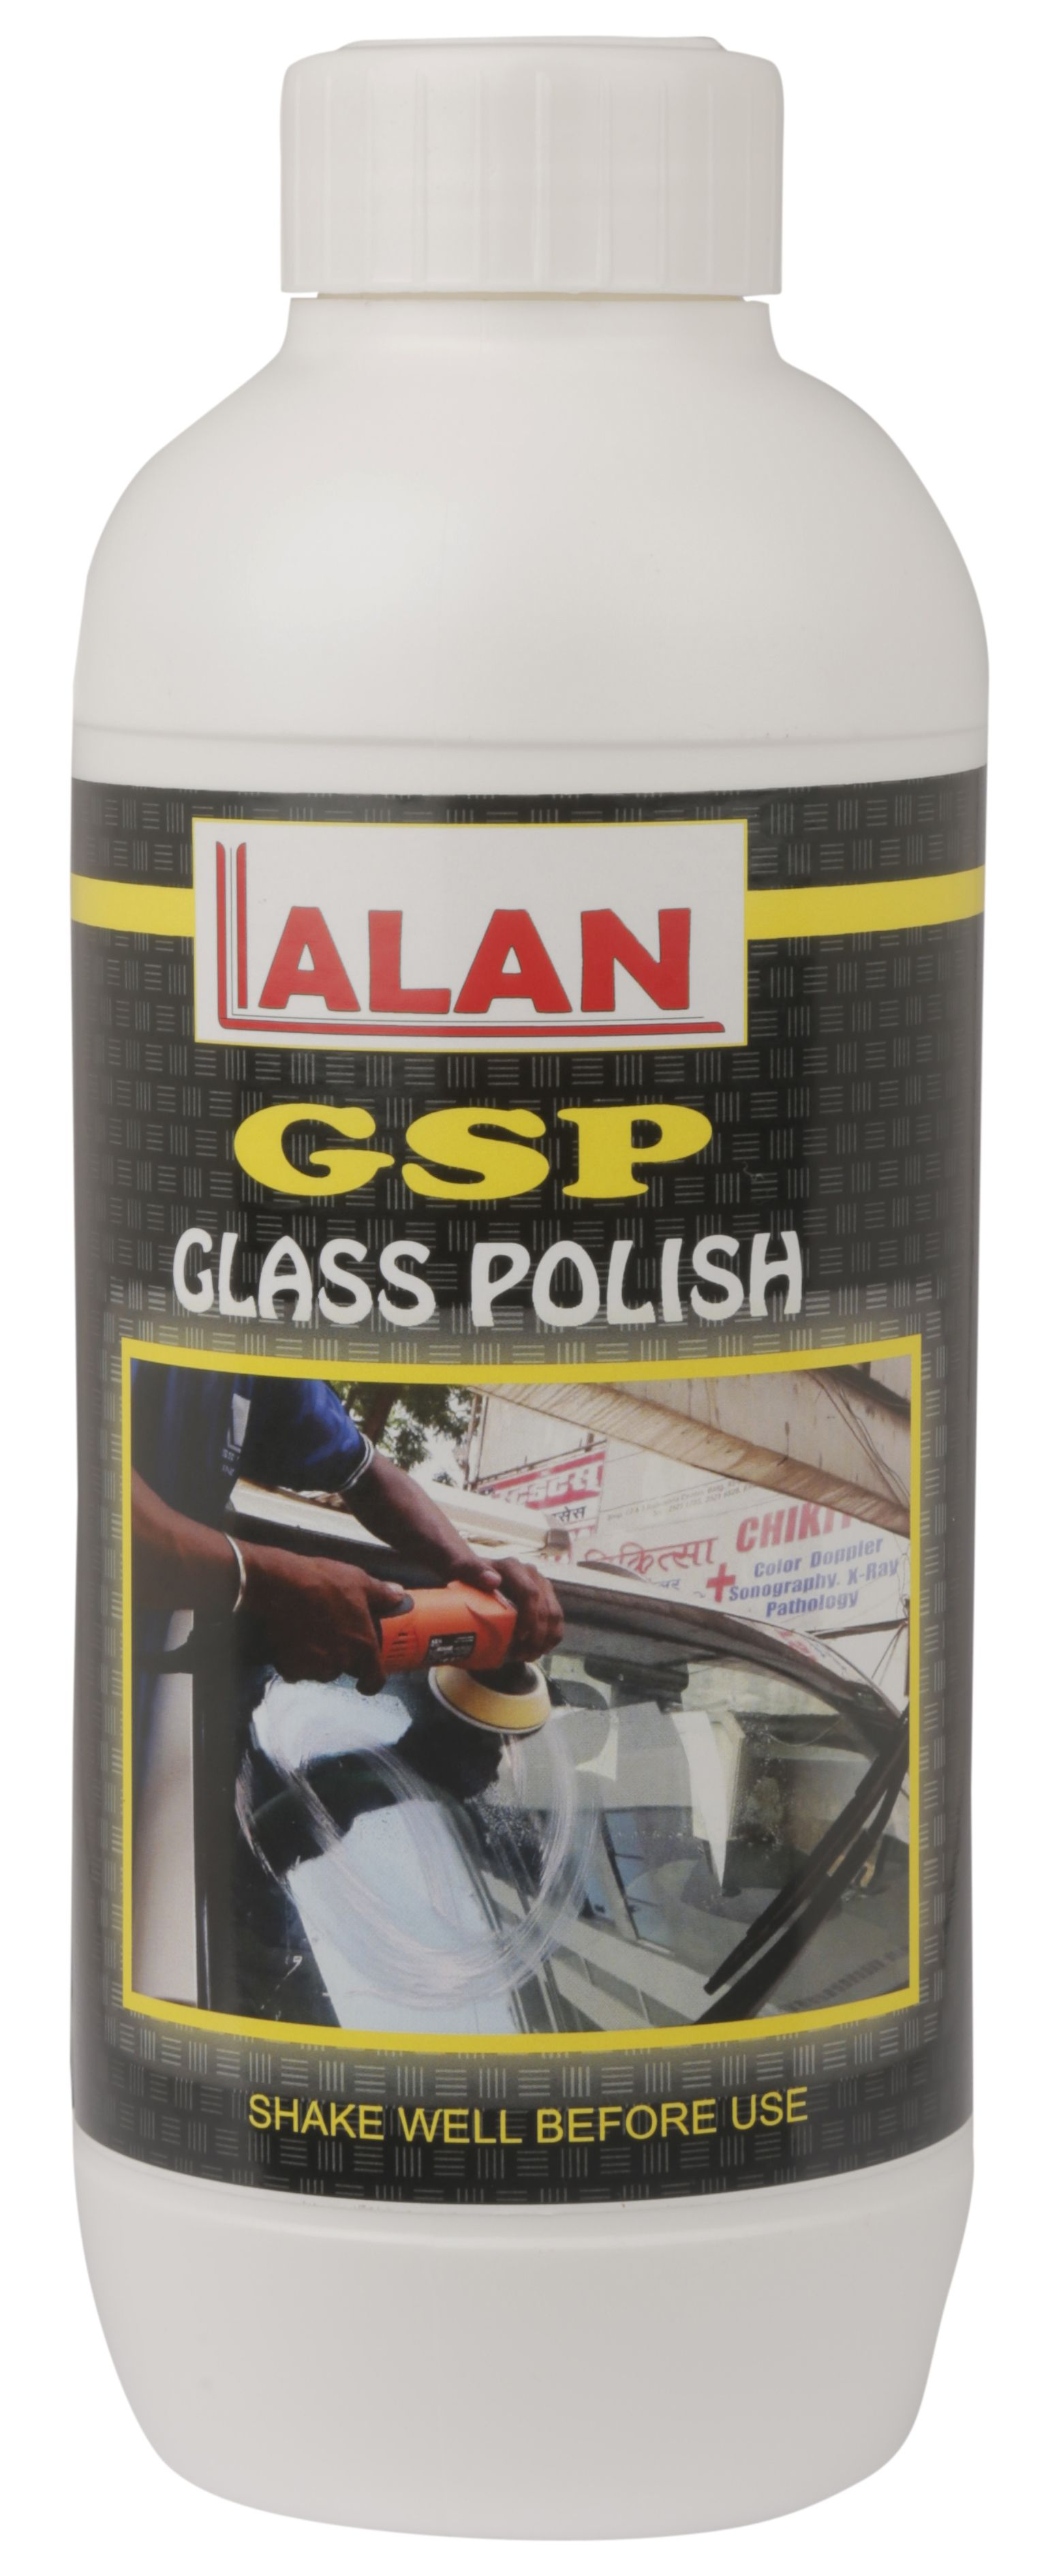 Lalan GSP - Glass Polish (500 ml)